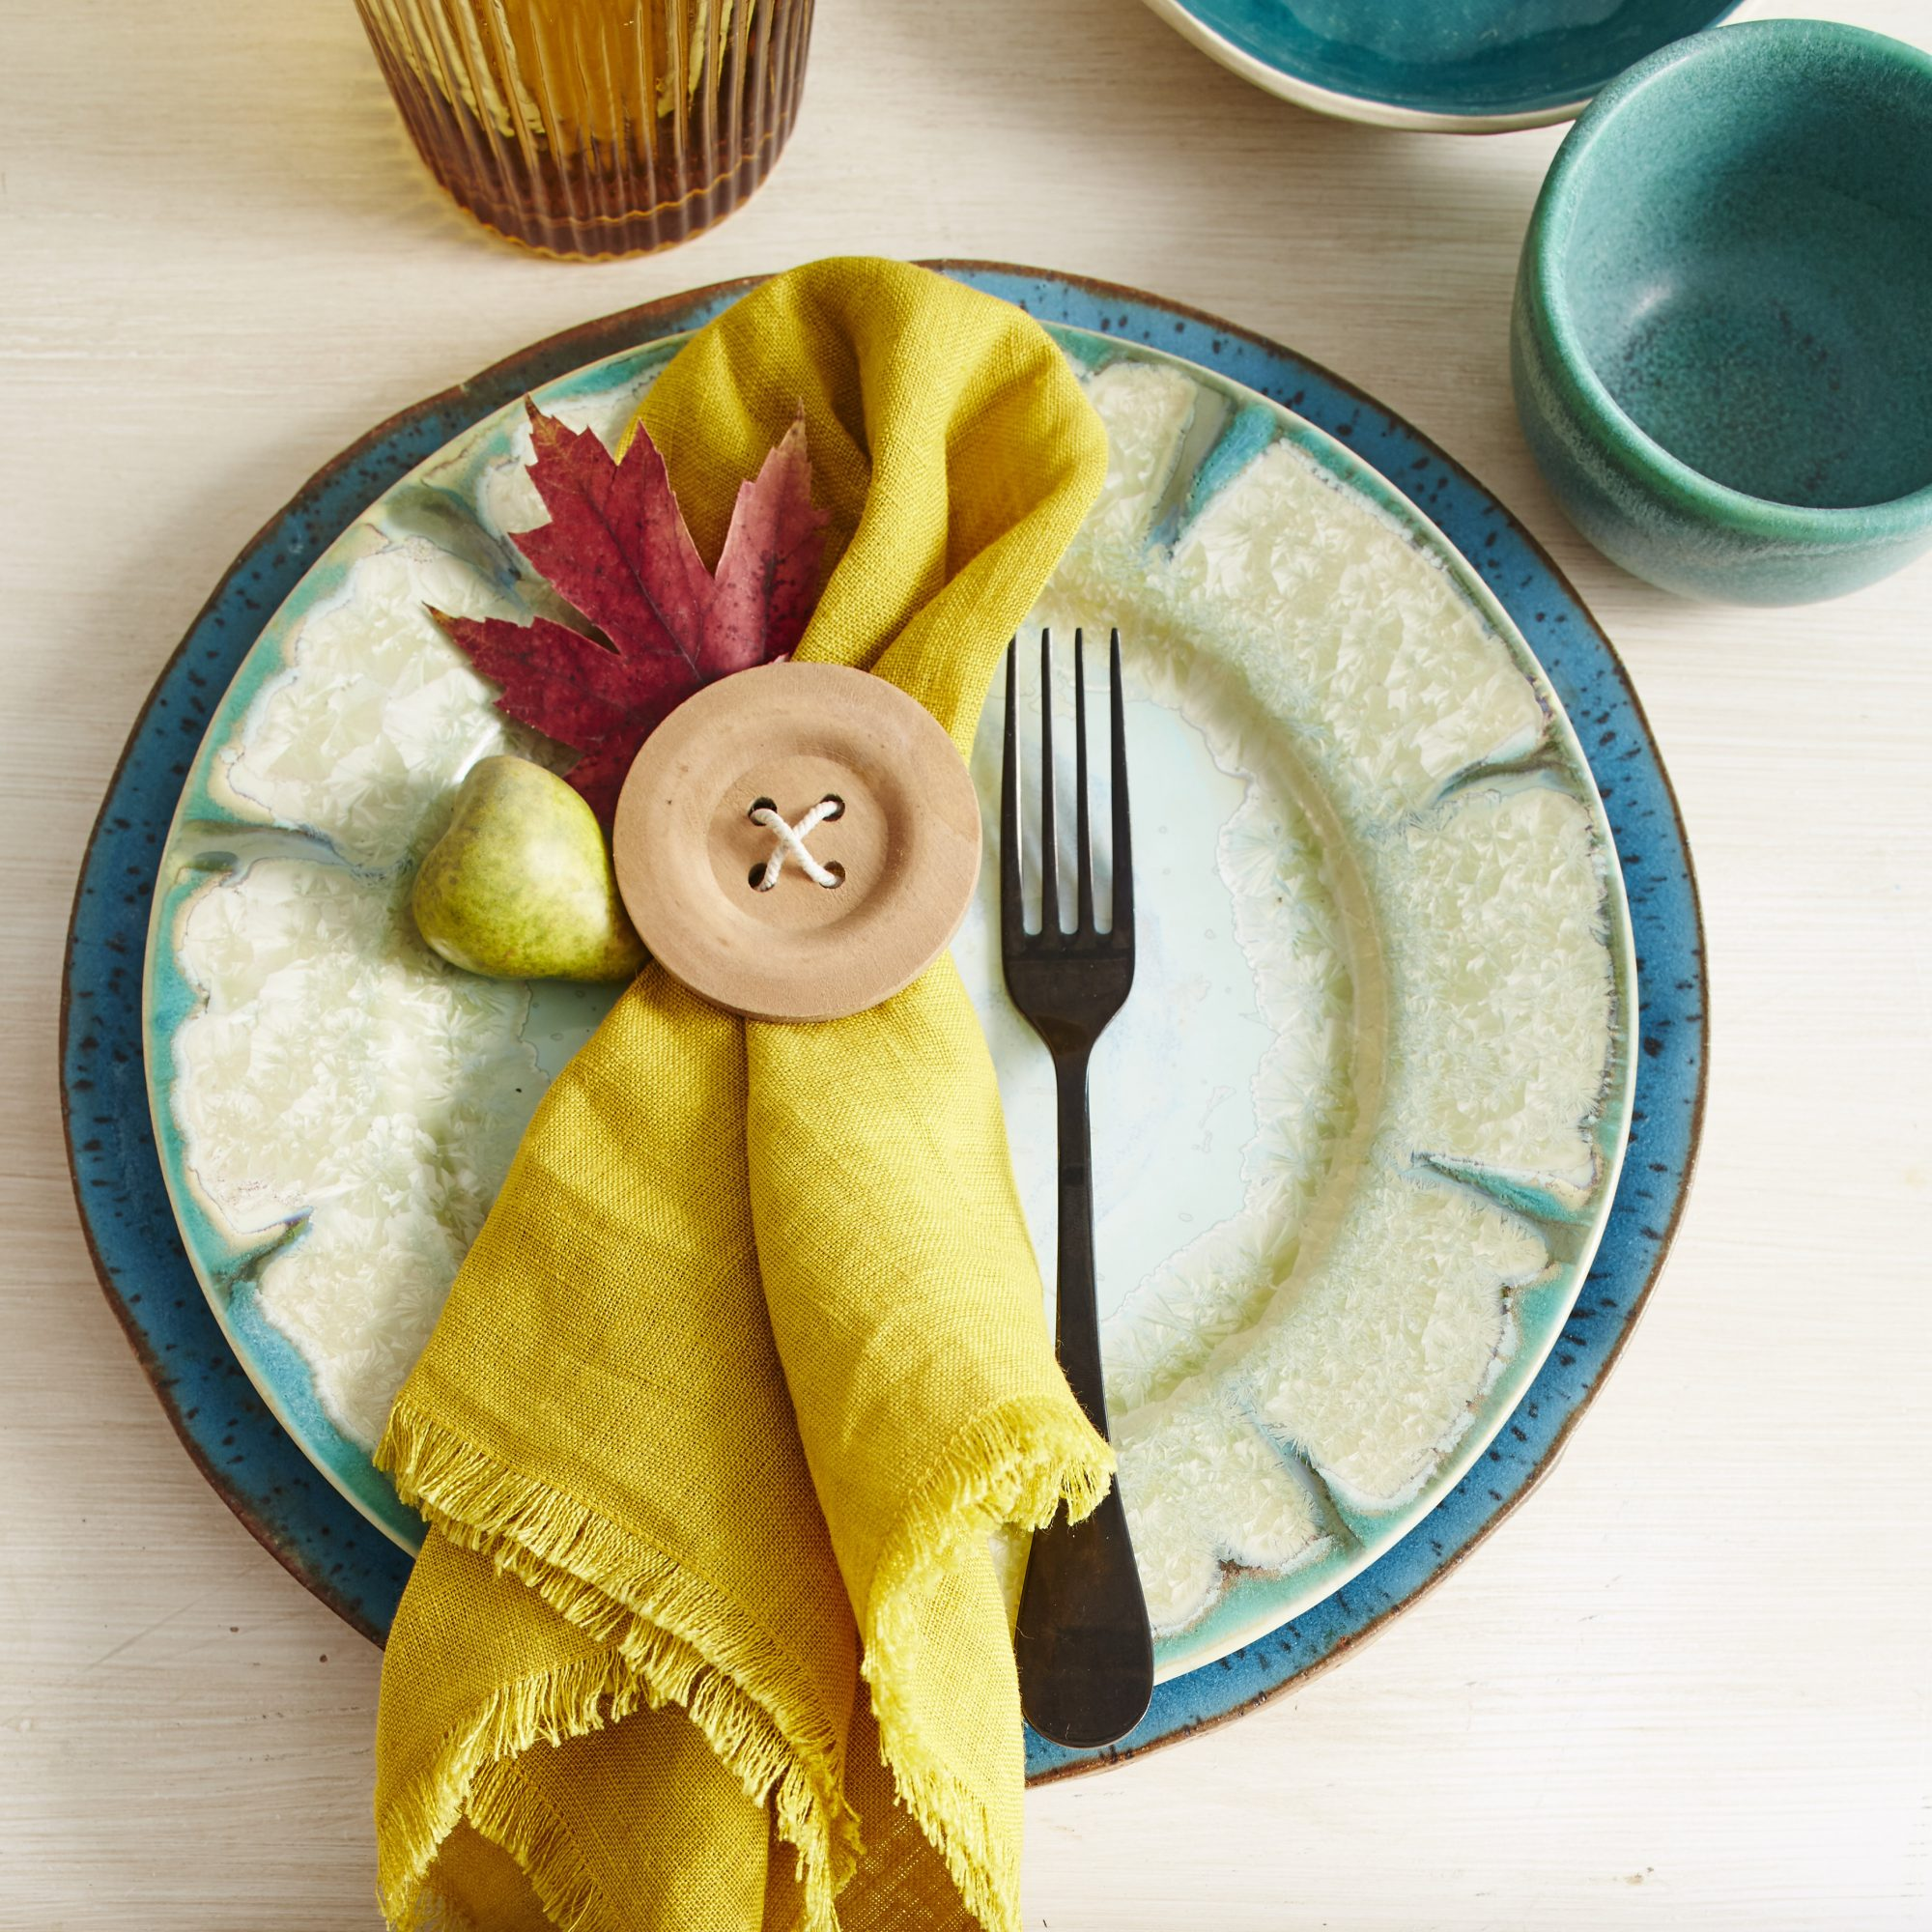 Cute-as-a-Button Table Settings